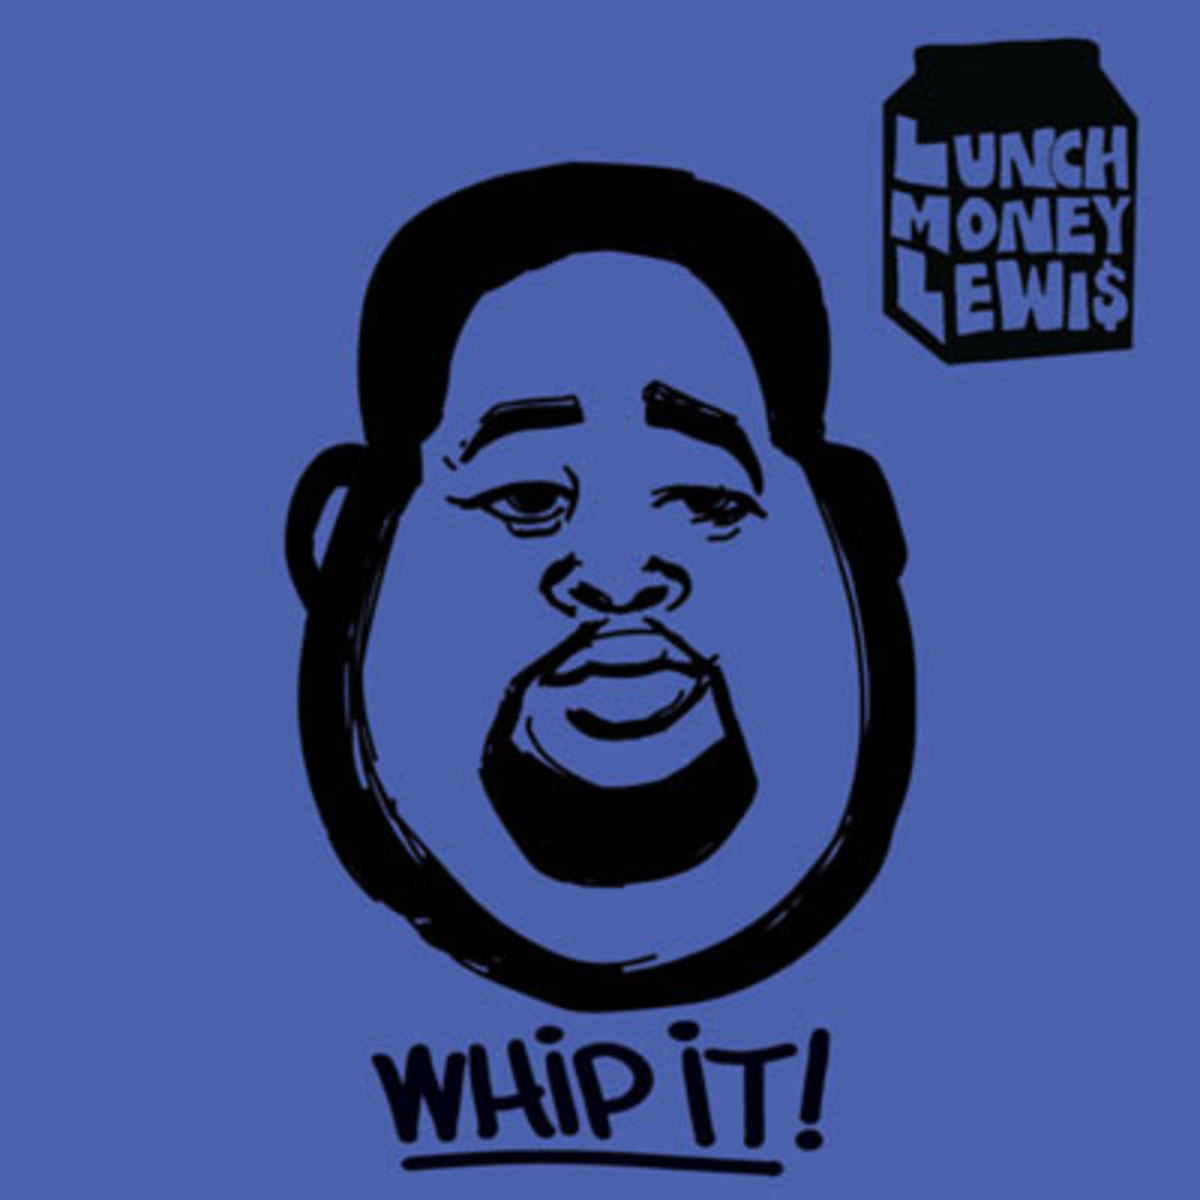 lunchmoney-lewis-whip-it.jpg